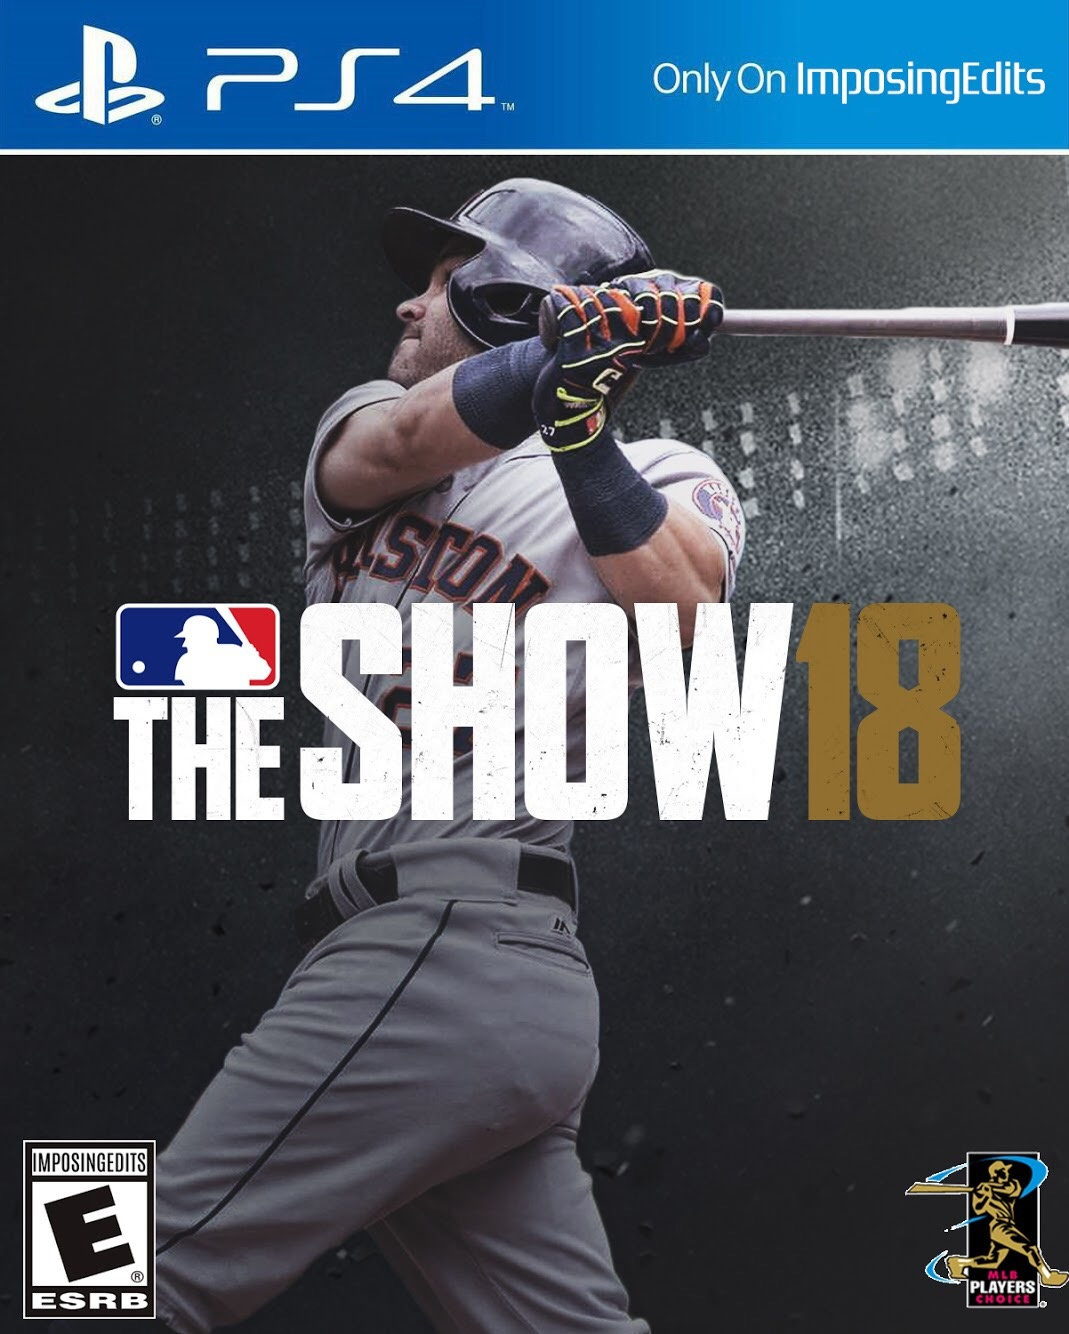 MLB The Show 18 Template (PSD)